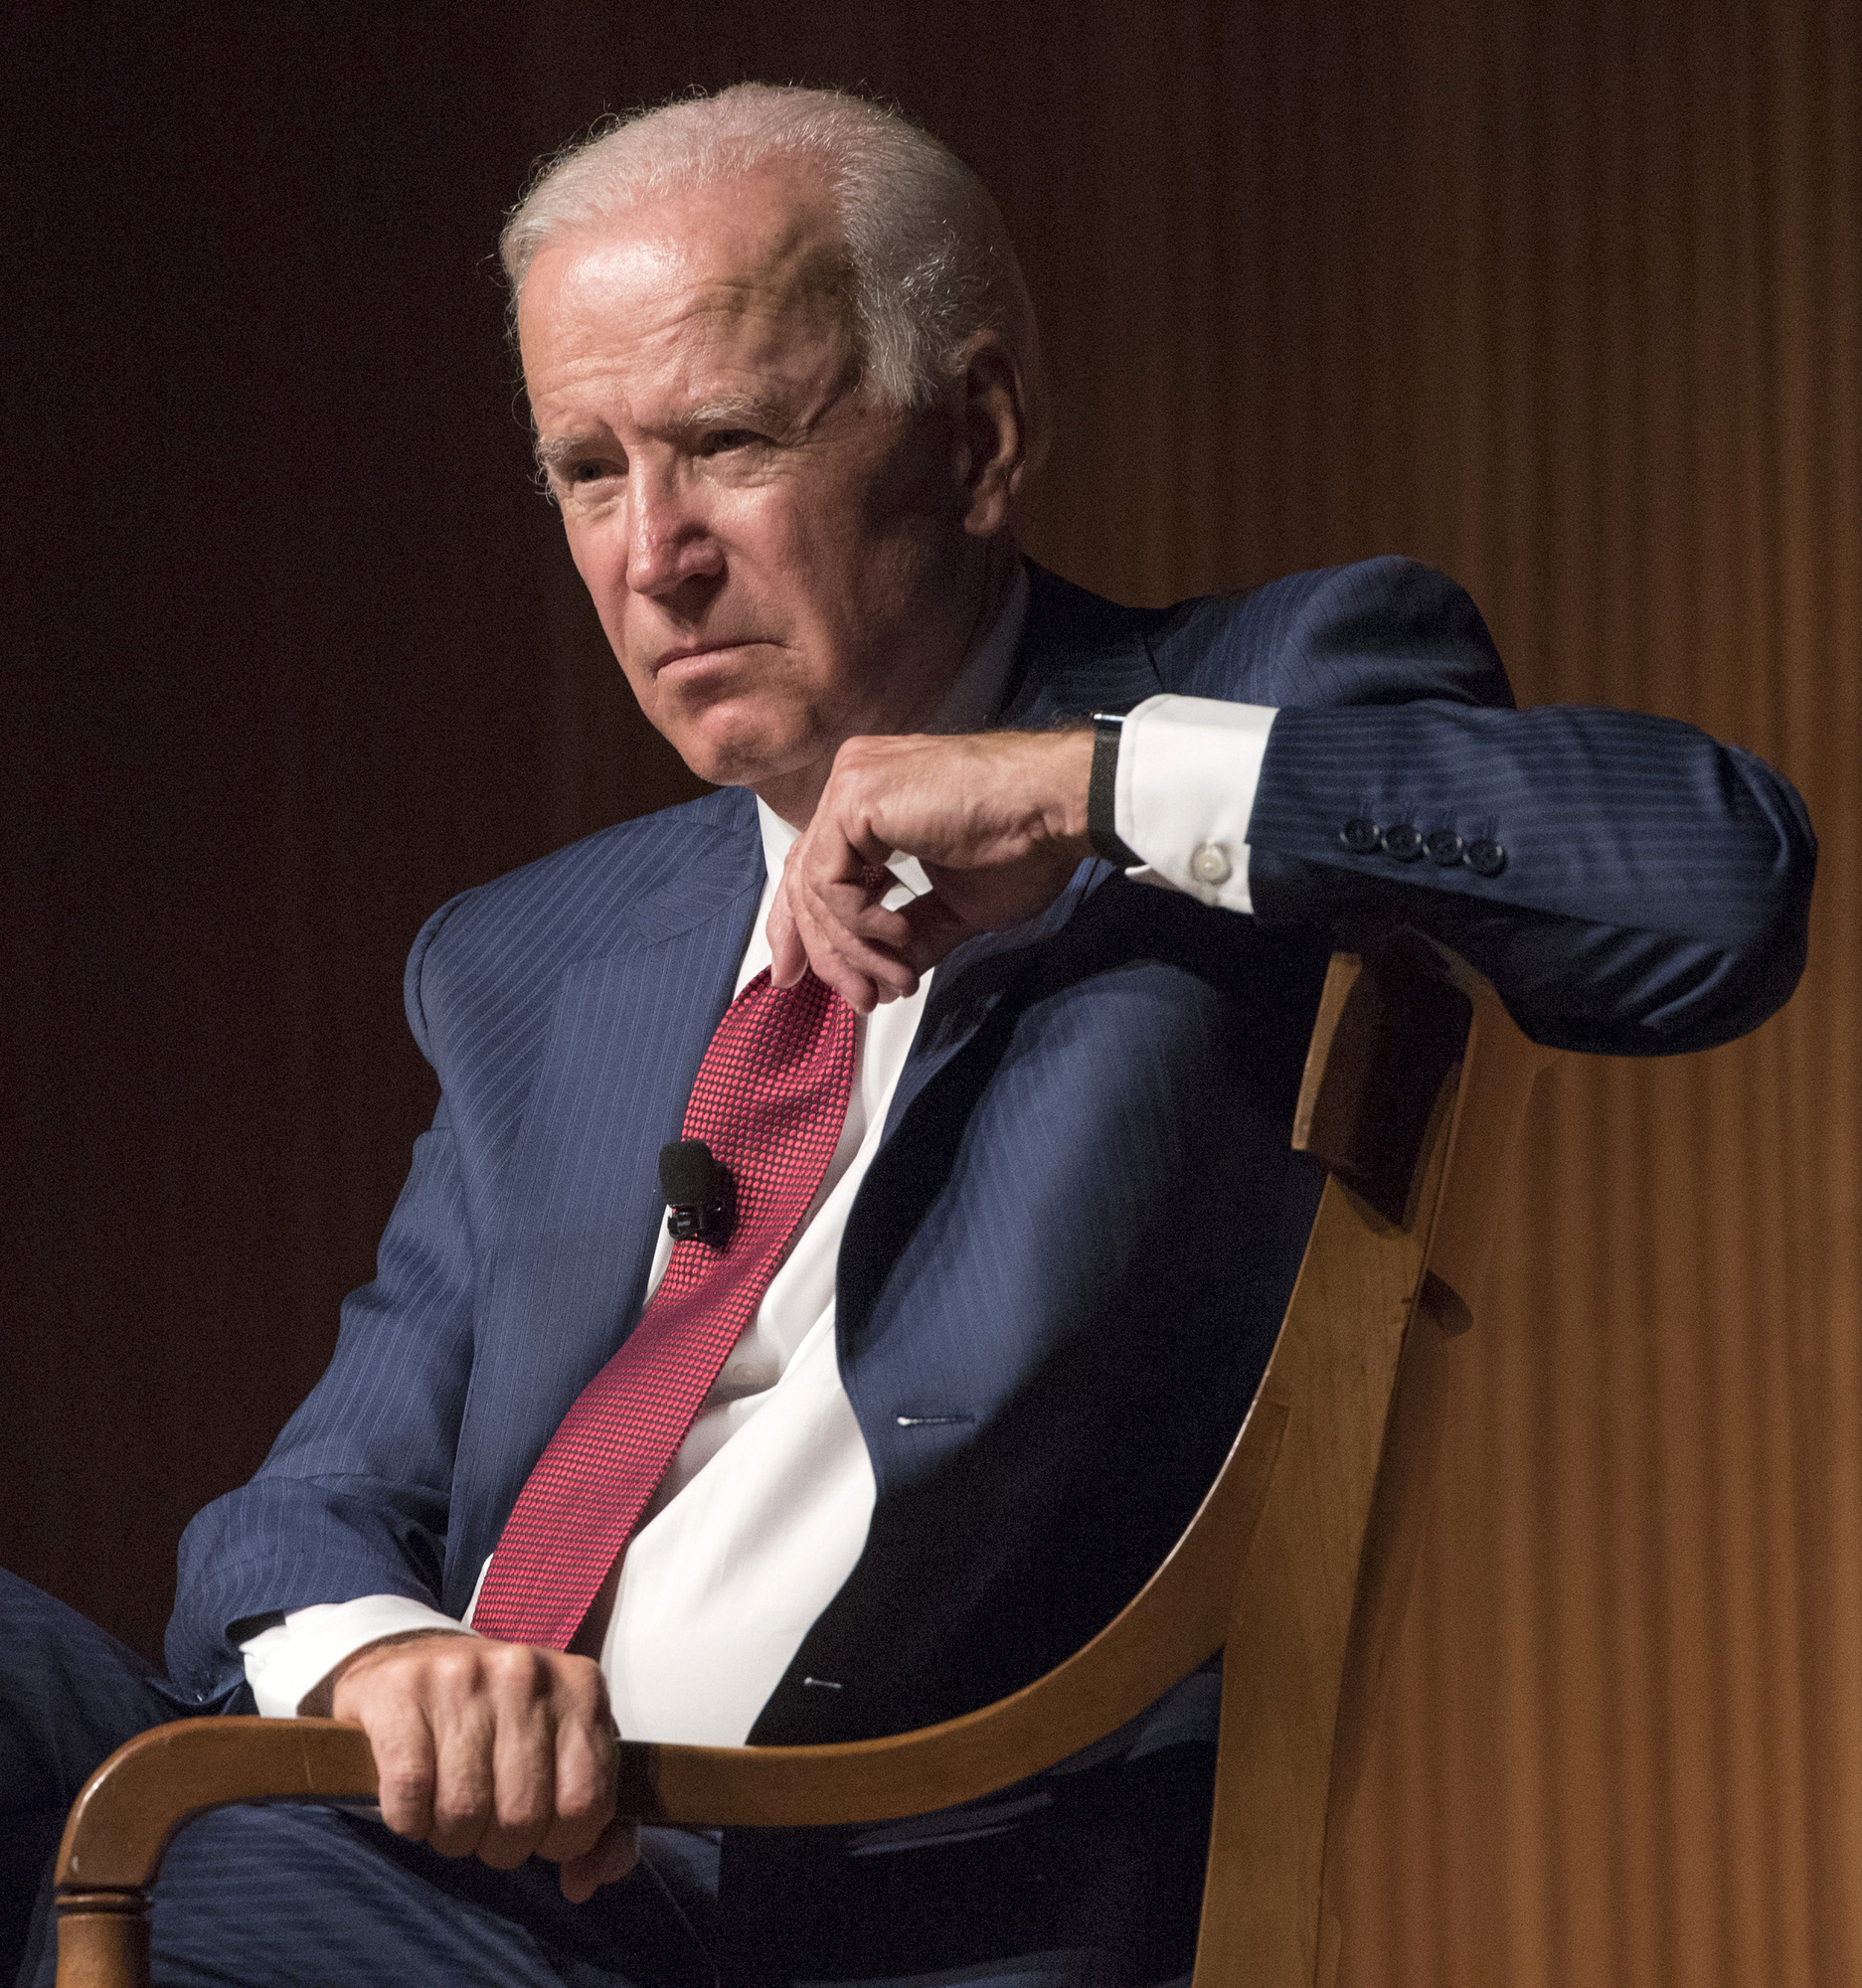 """Joe Biden Caught on Tape Saying """"Punch Her in the Taco"""""""